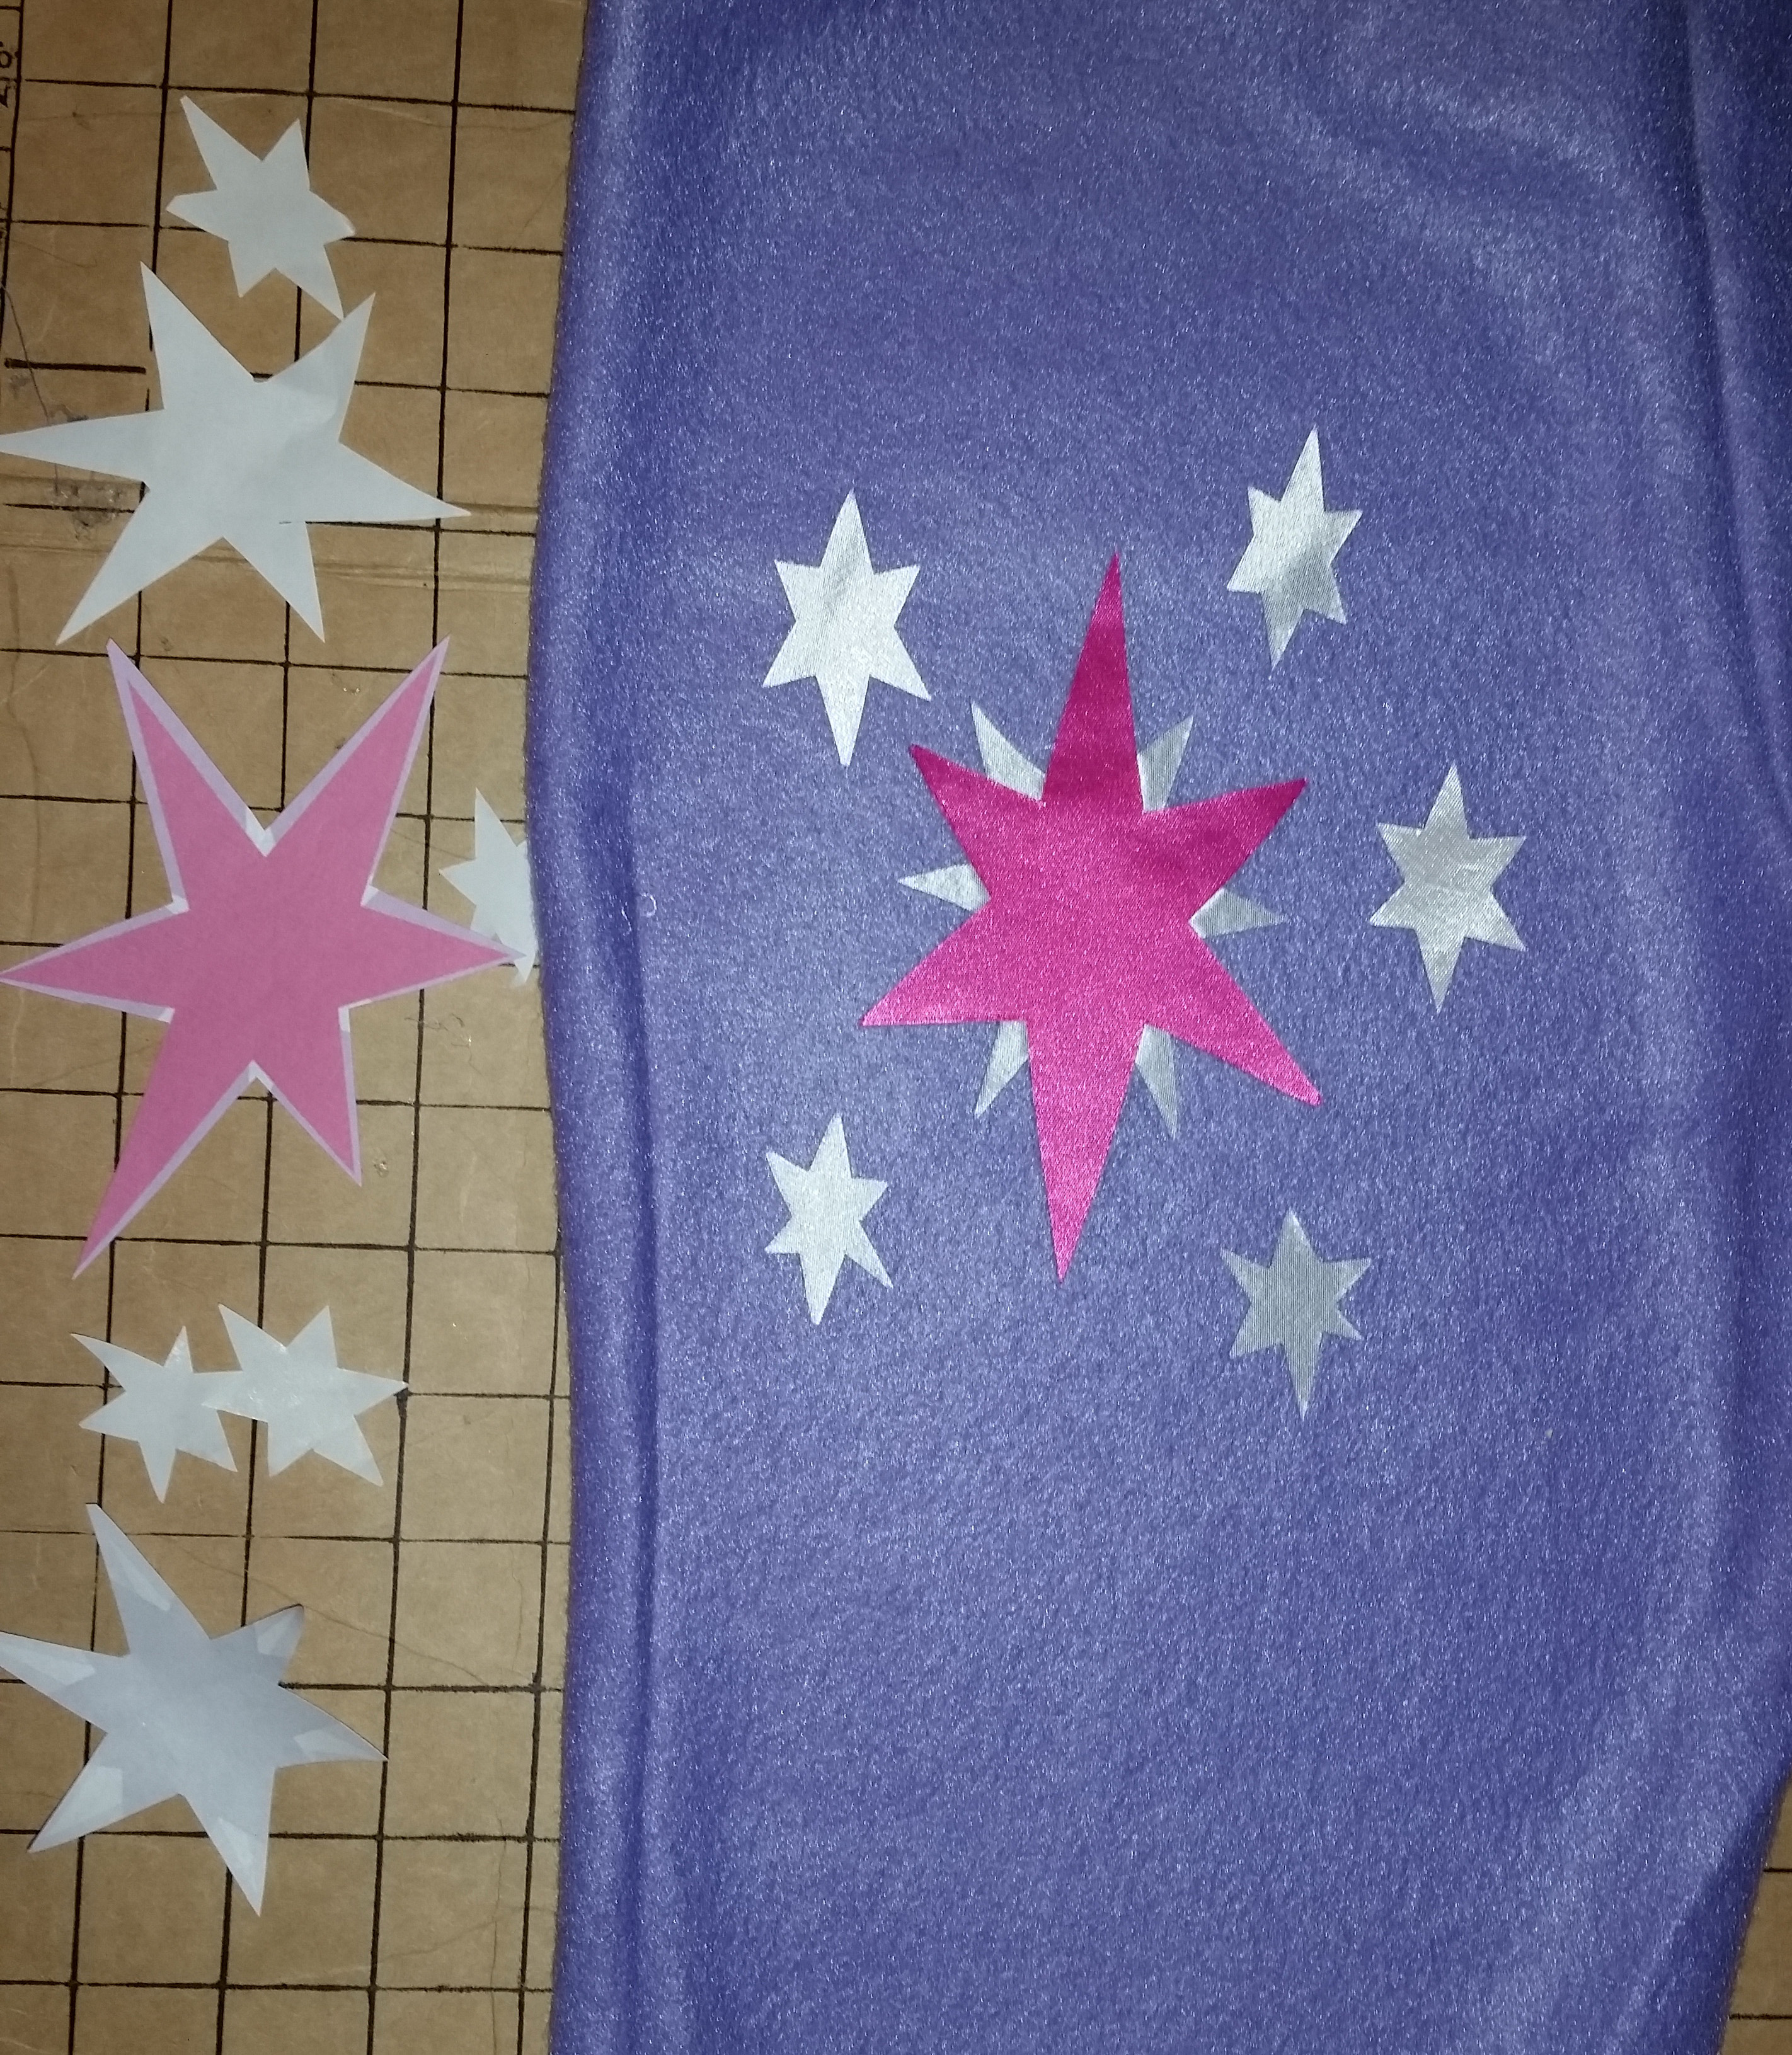 Picture of Make Pants and a Cutie Mark.